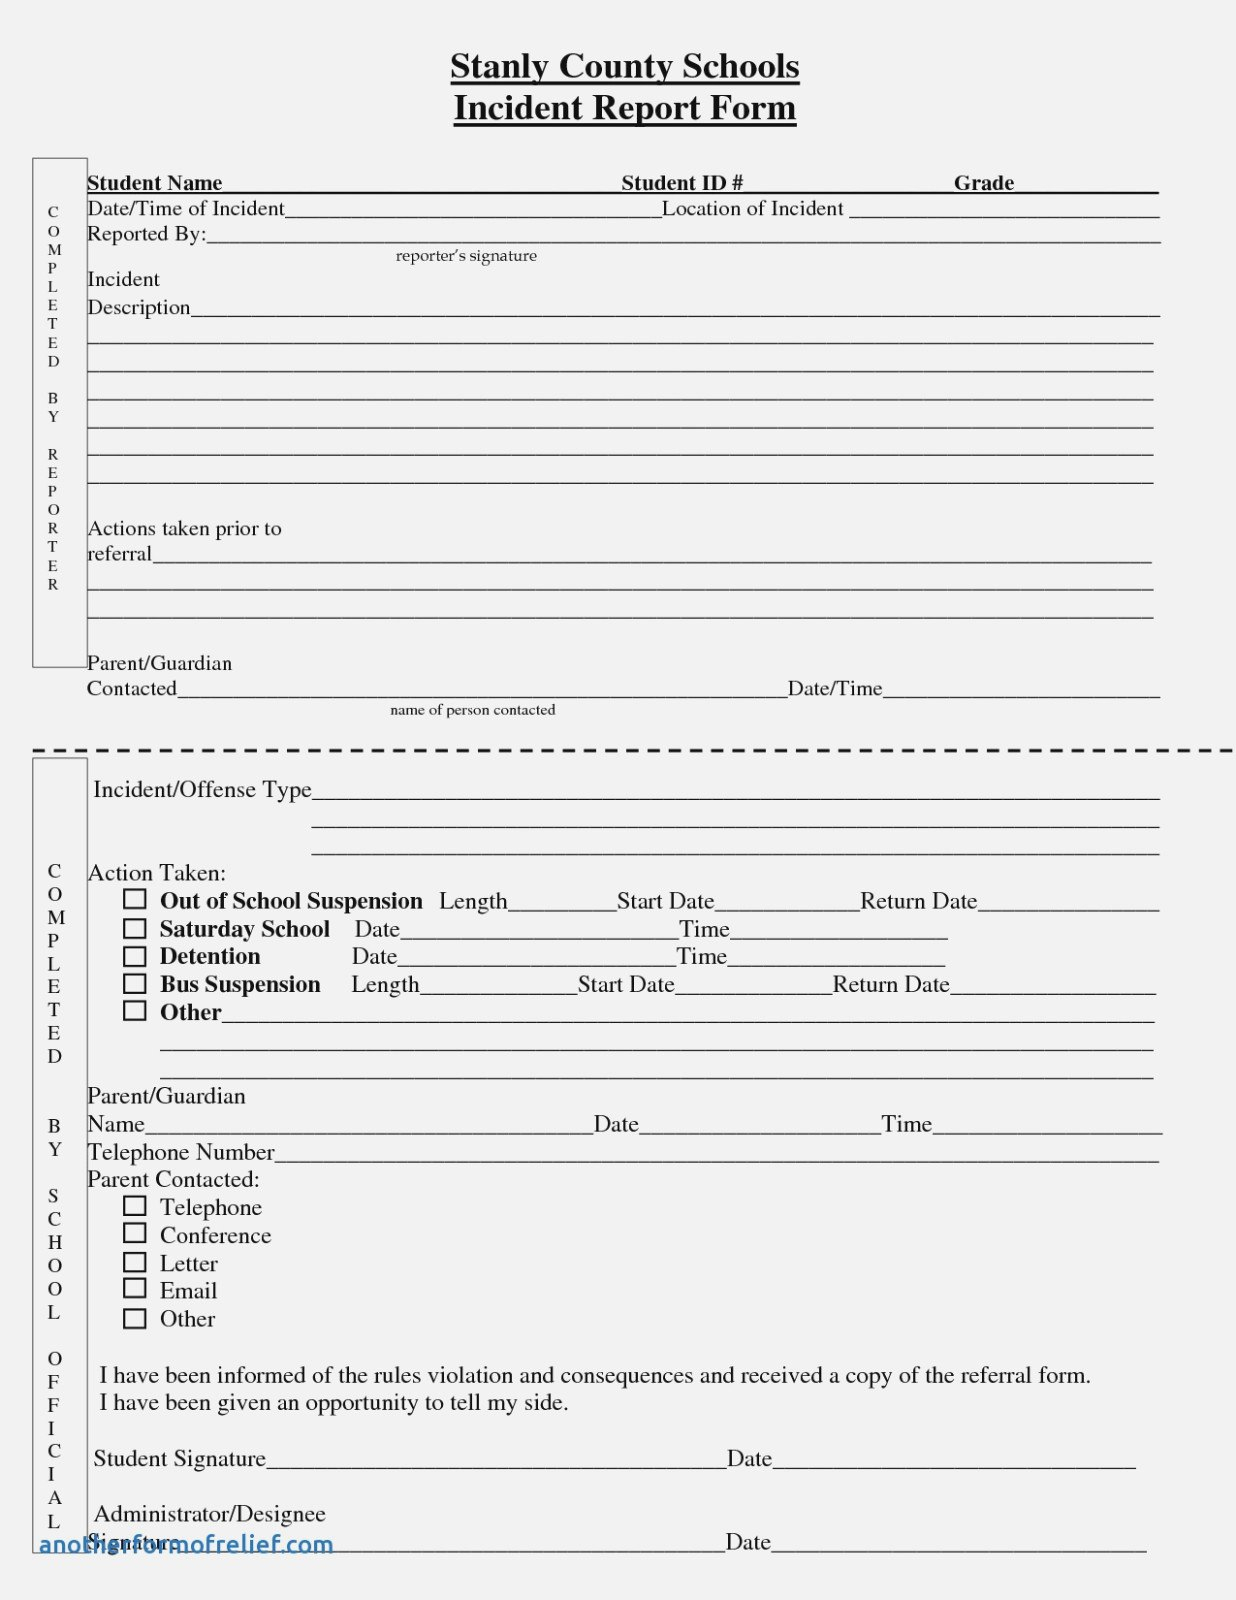 Customer Incident Report Form Template New Best S Of Standard Regarding Customer Incident Report Form Template